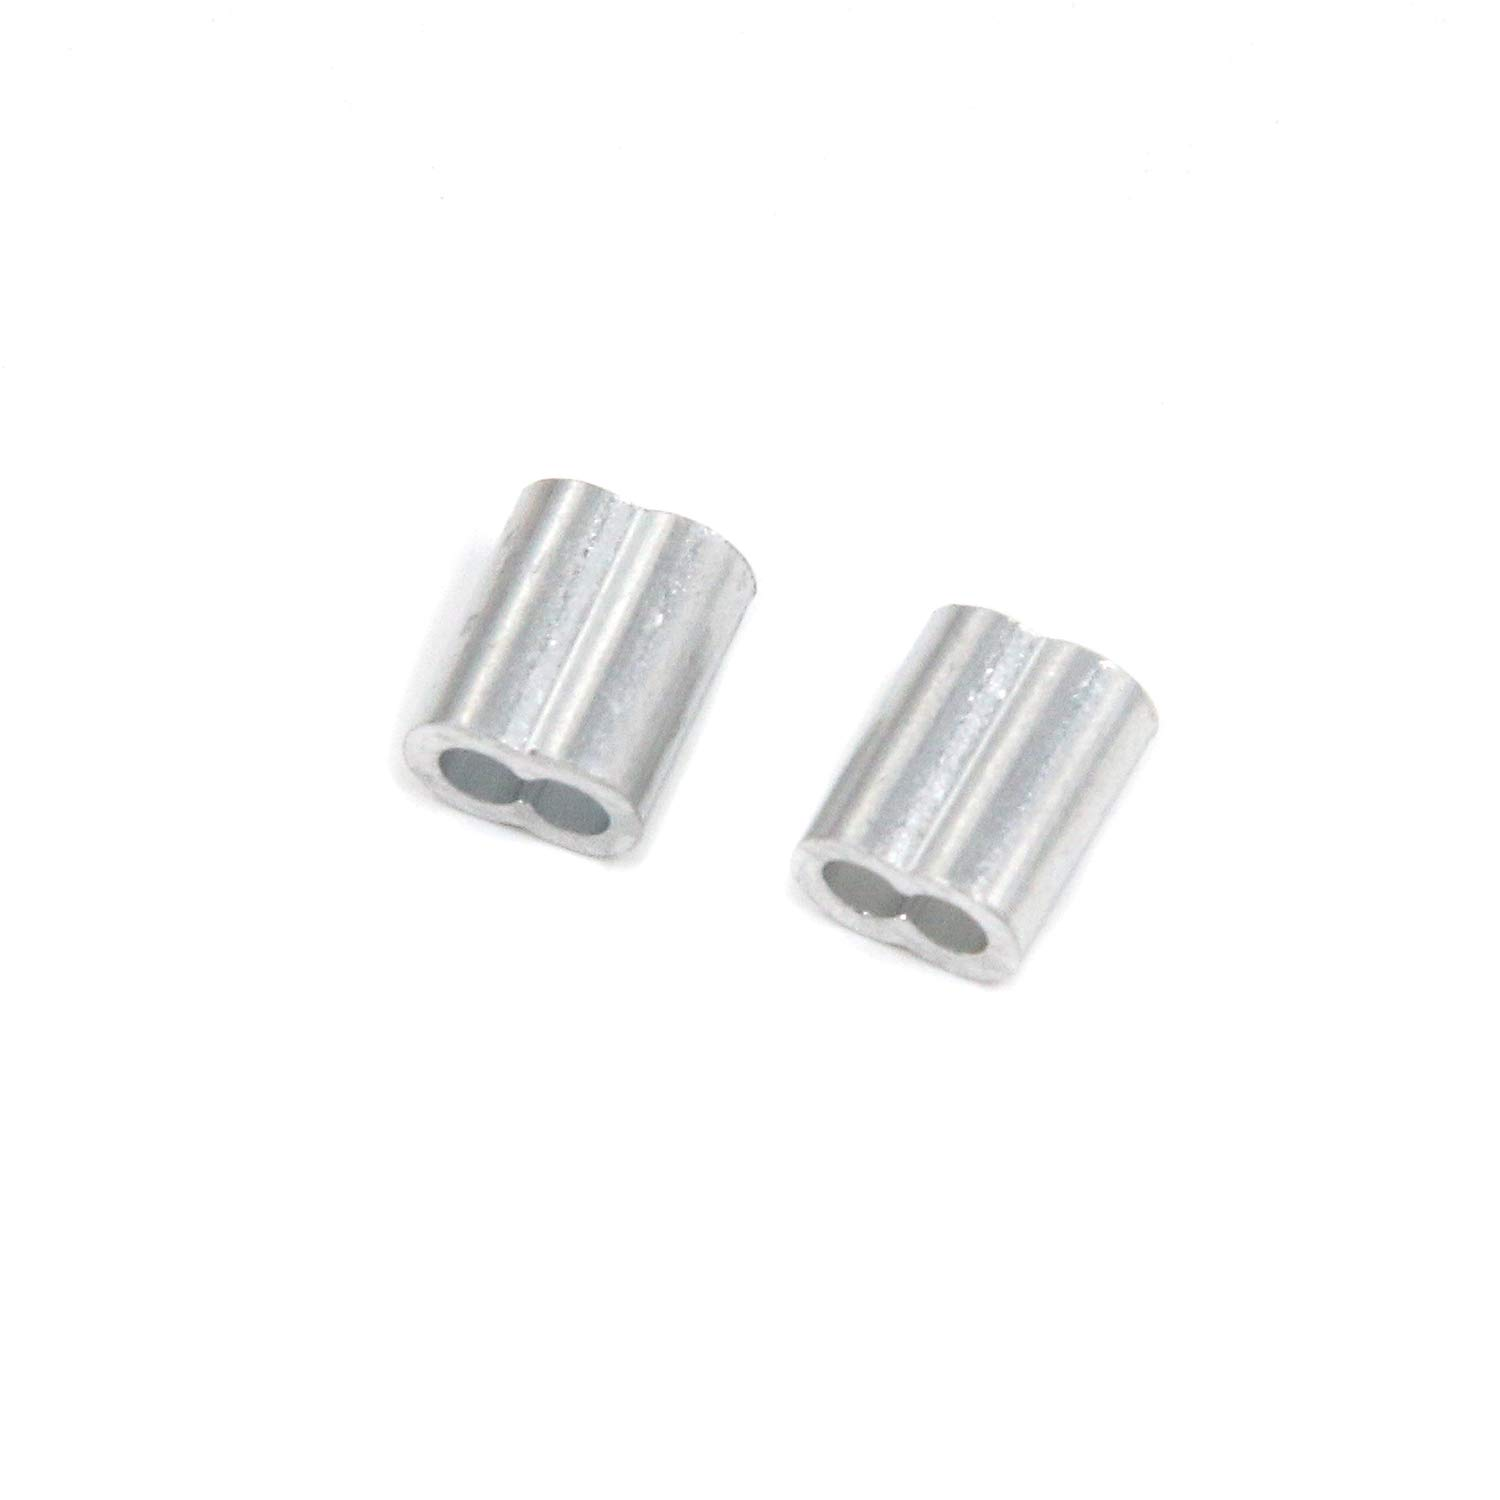 Quluxe 200 Pcs of 0.09 DiameterDouble Hole Cable Ferrule Aluminum Crimping Loop Sleeve for Wire Rope